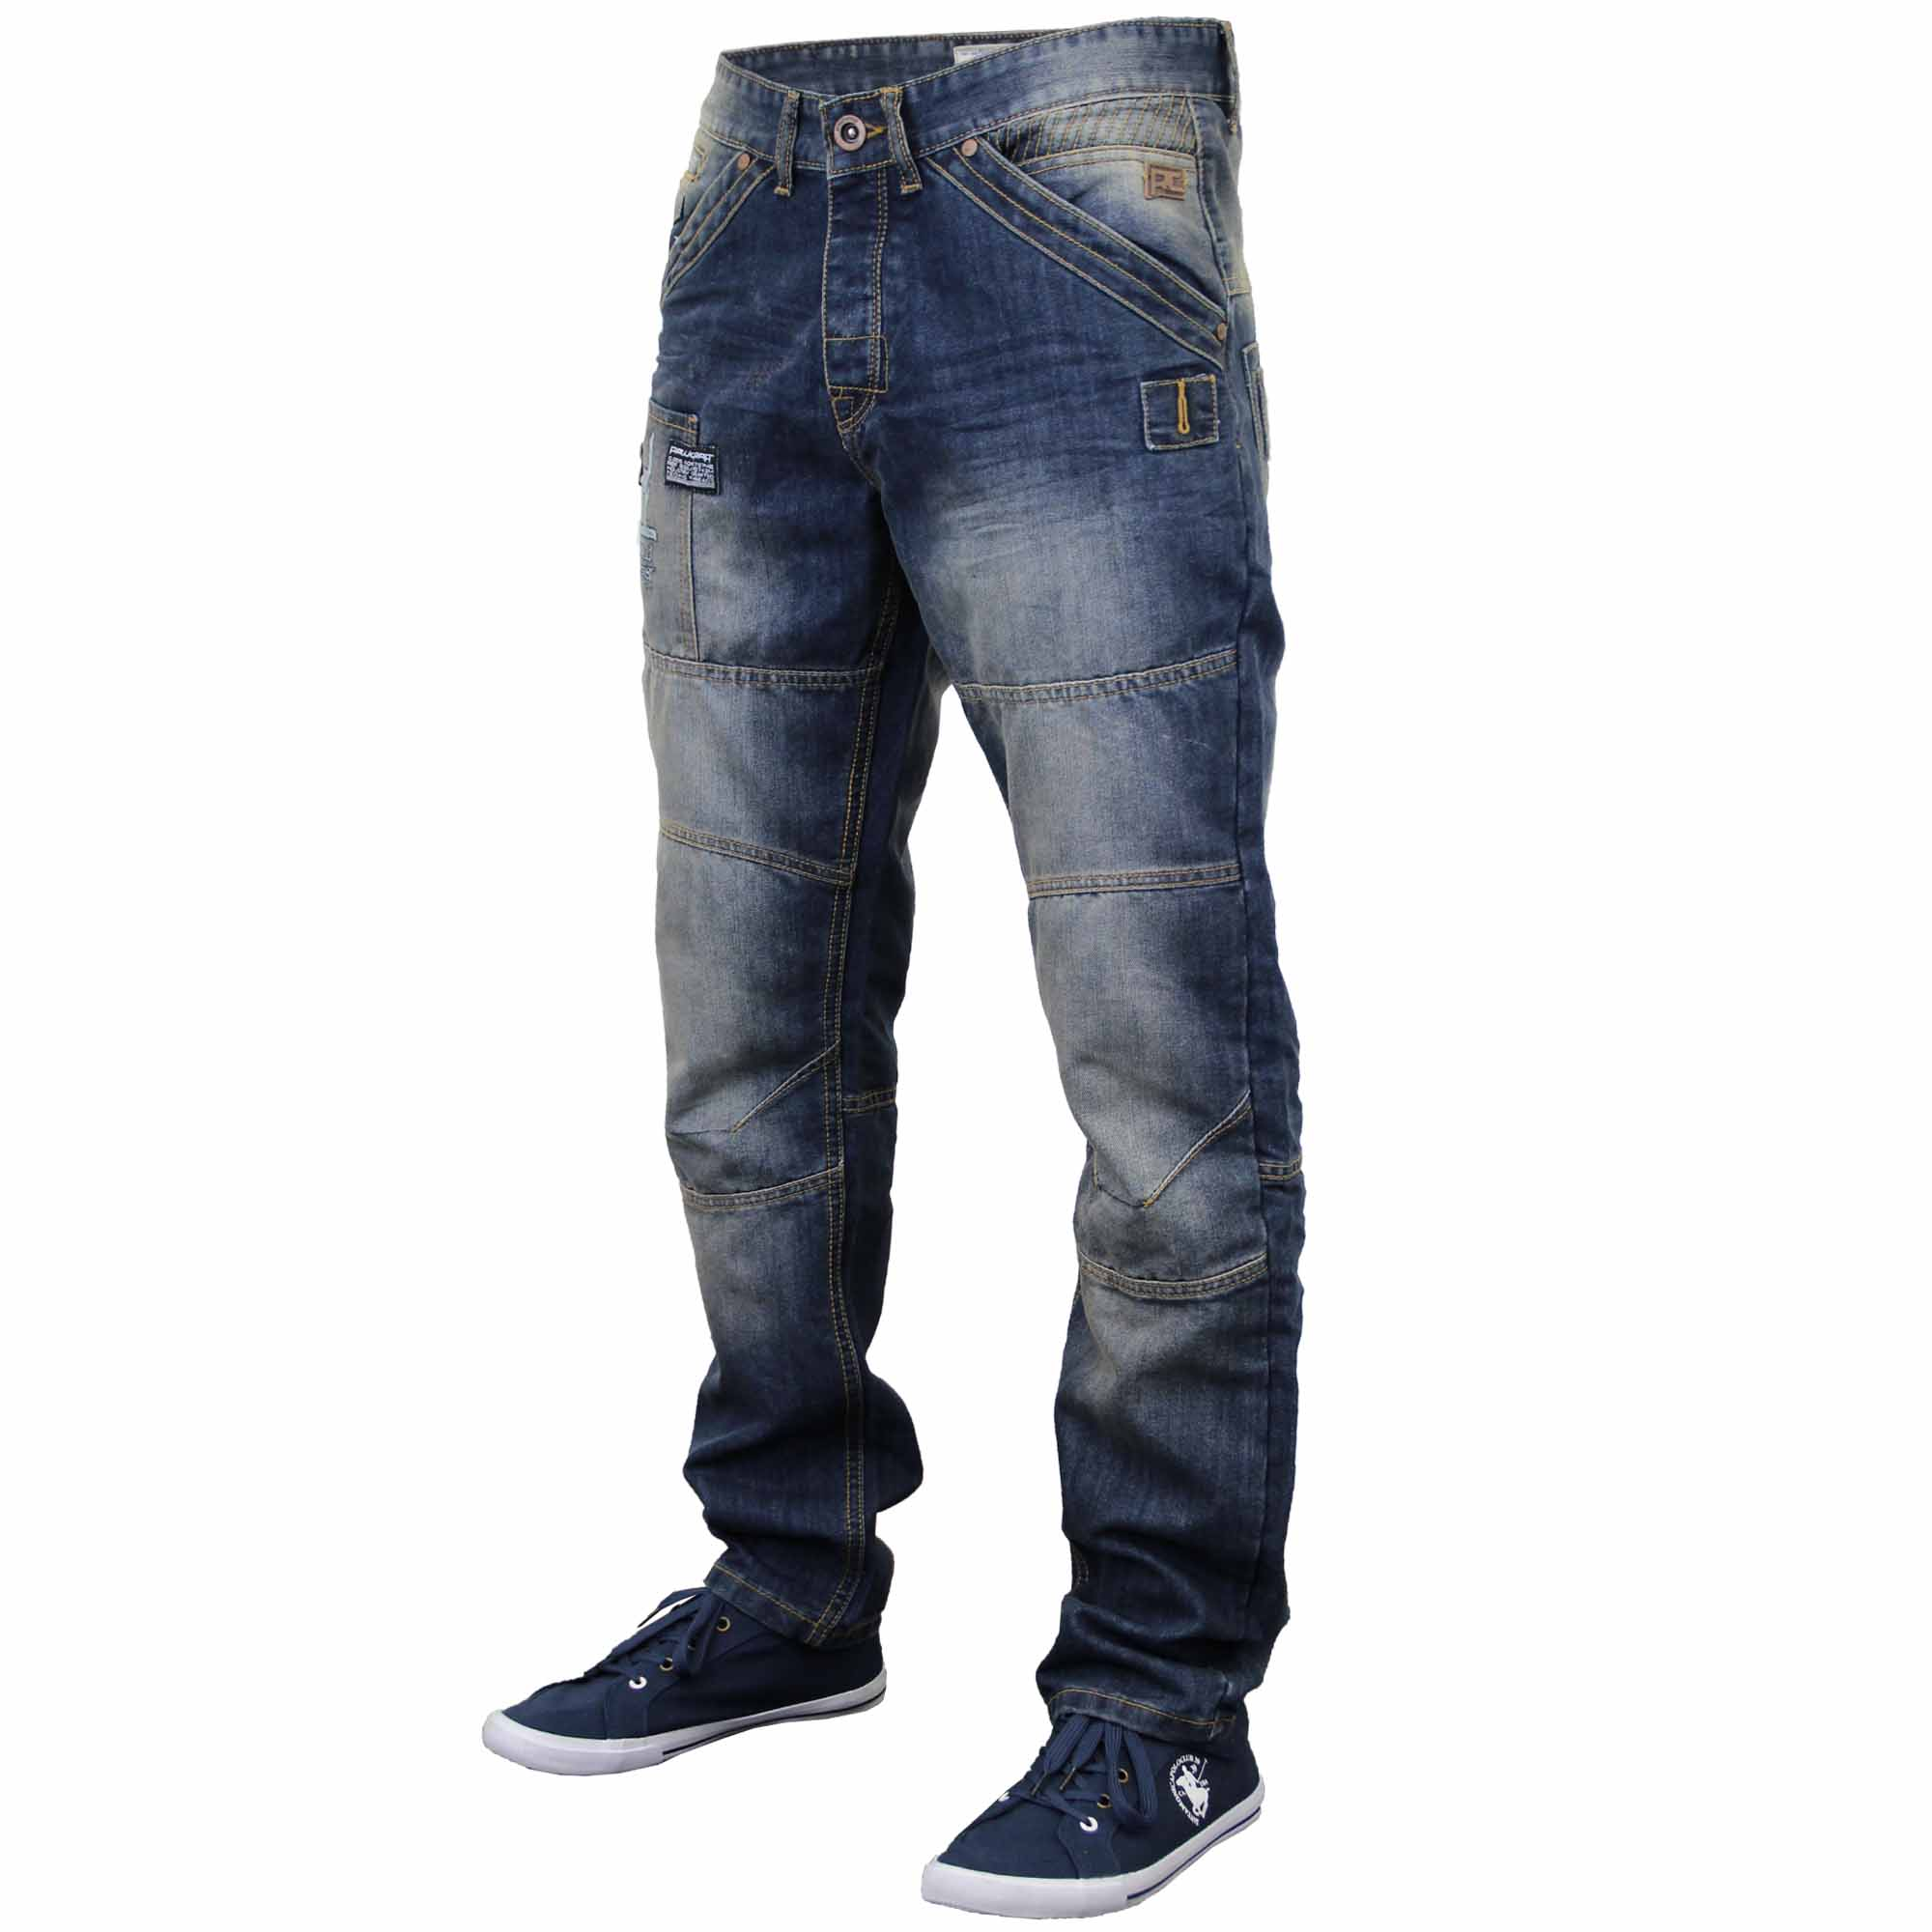 Discover tapered fit jeans with ASOS. One of summer's key looks in men's denim, shop for men's tapered jeans with ASOS.